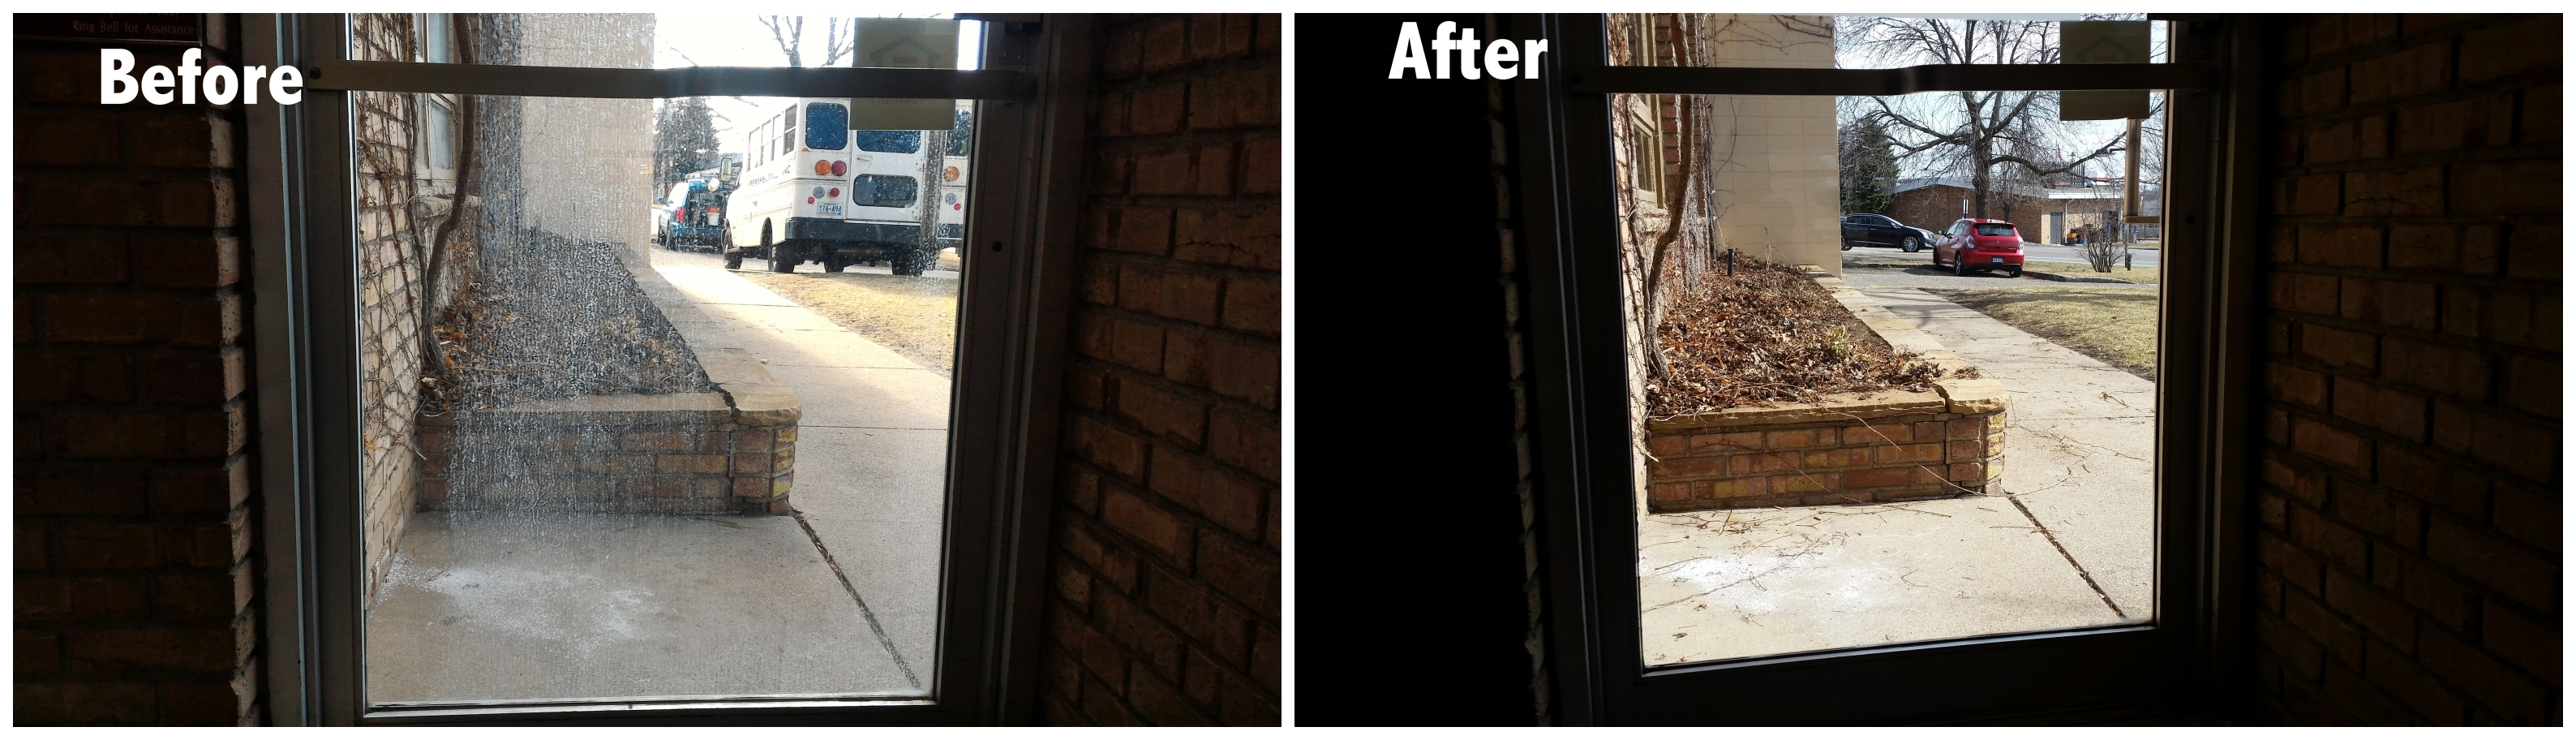 Window Stain Removal Minneapolis – St. Paul, MN